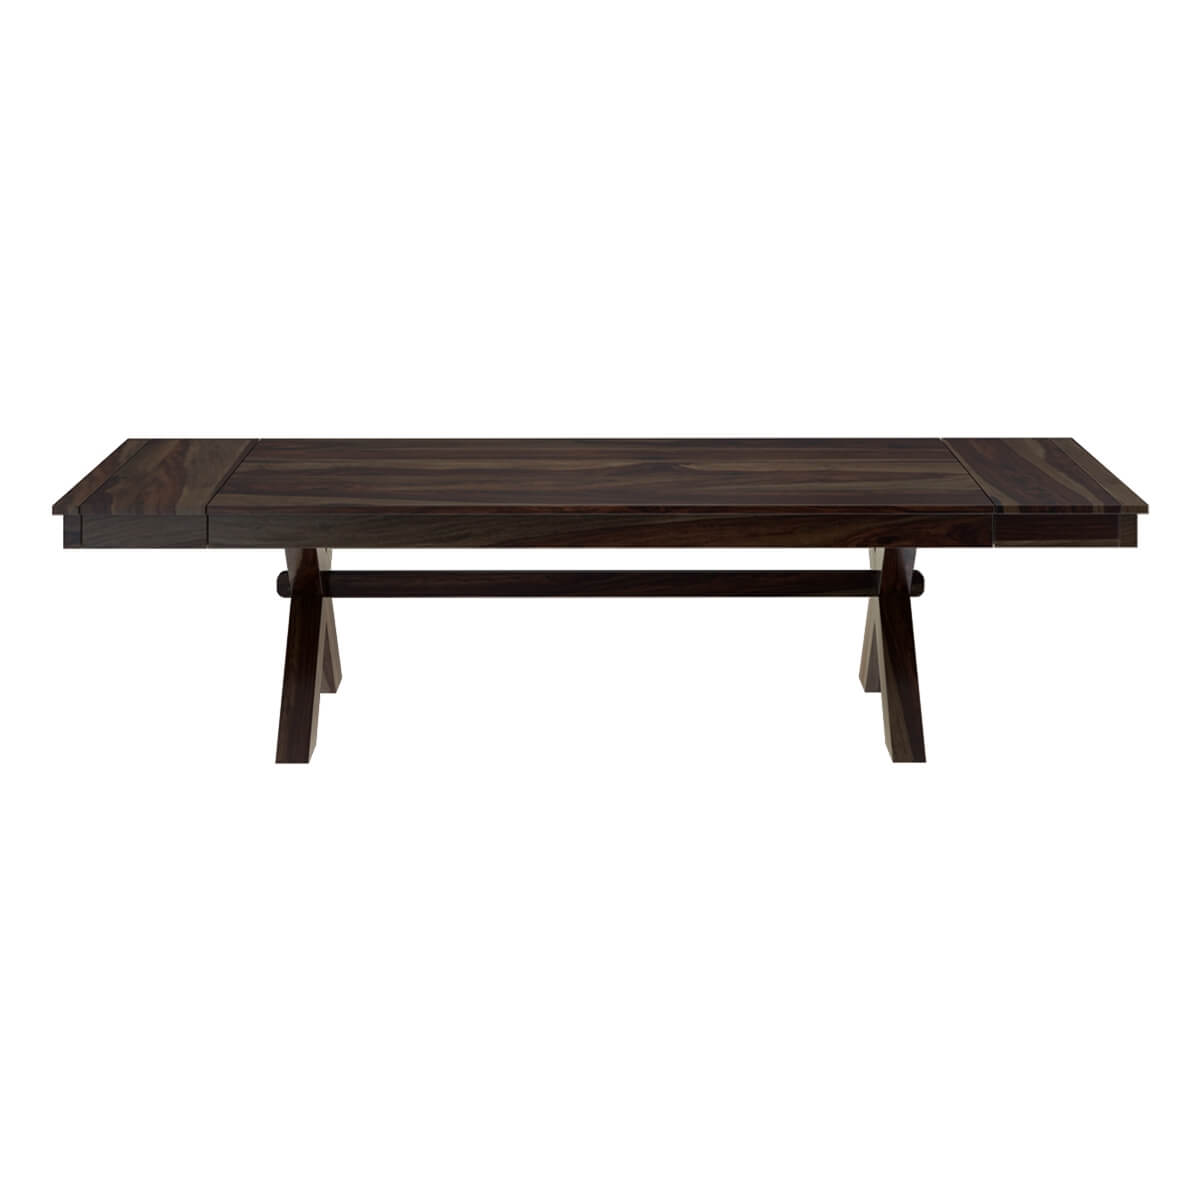 westside picnic style solid wood dining table with extensions. Black Bedroom Furniture Sets. Home Design Ideas